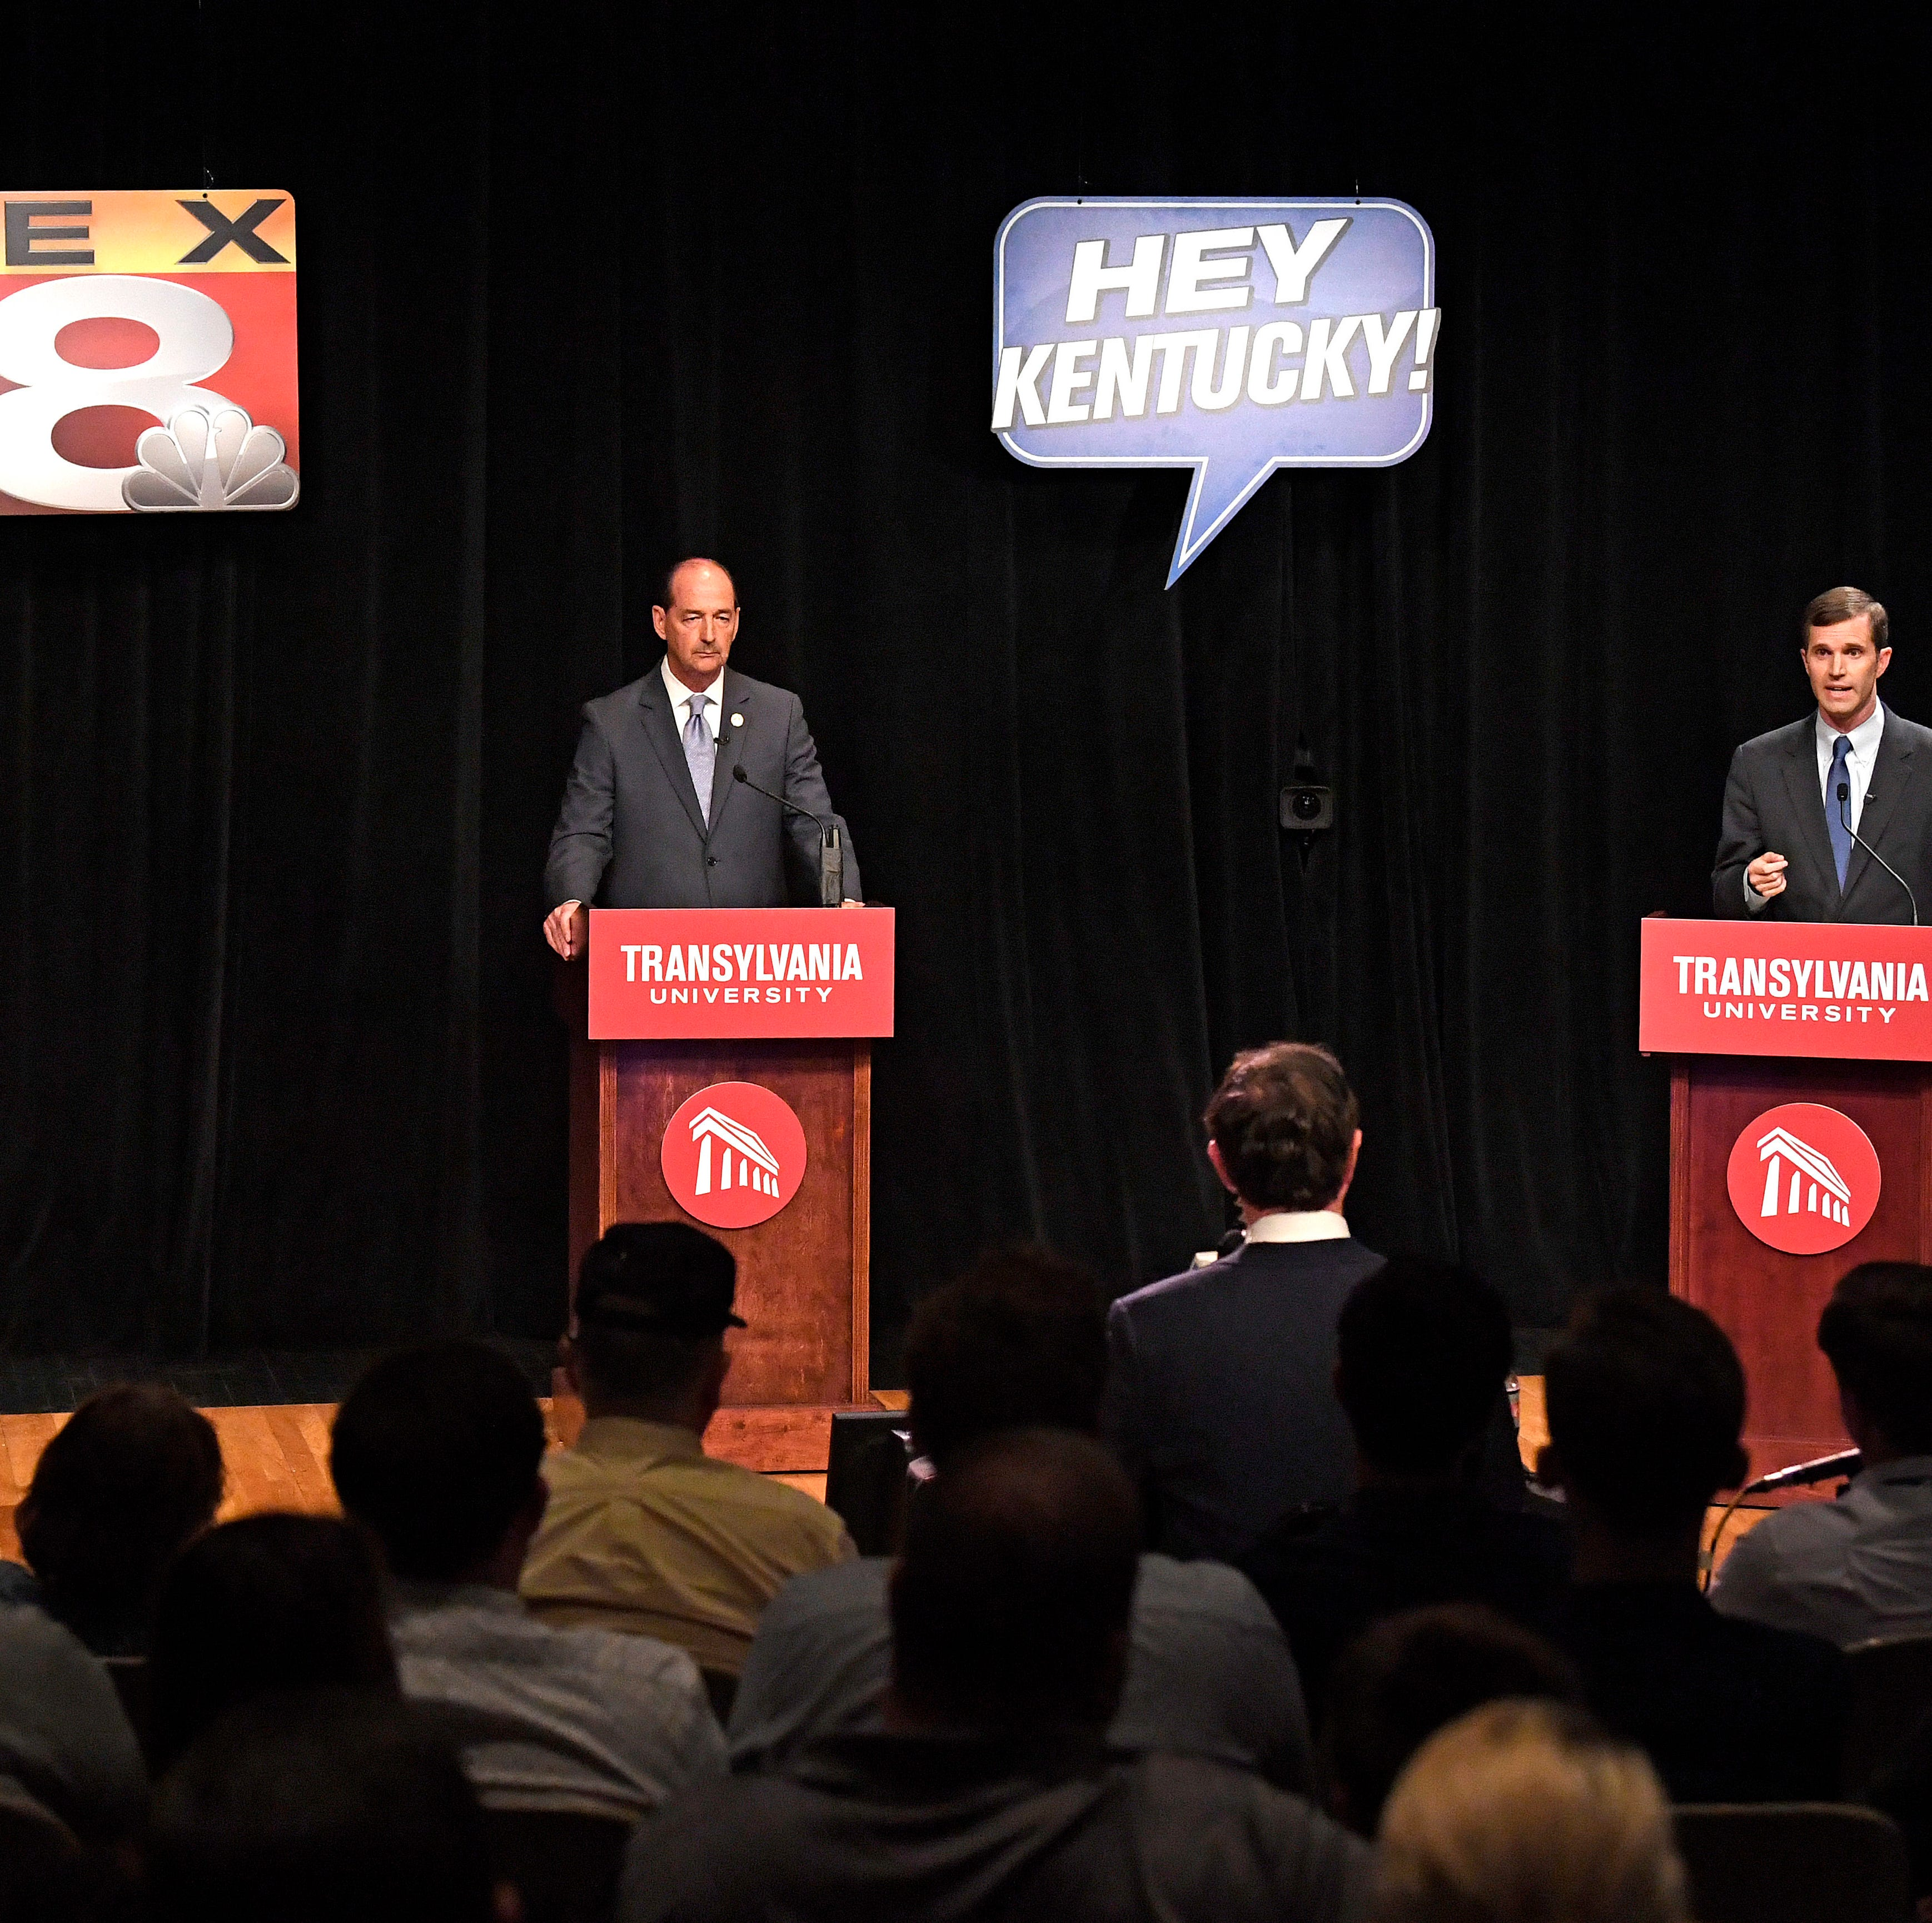 How to watch Kentucky's Democratic governor candidates take part in a forum